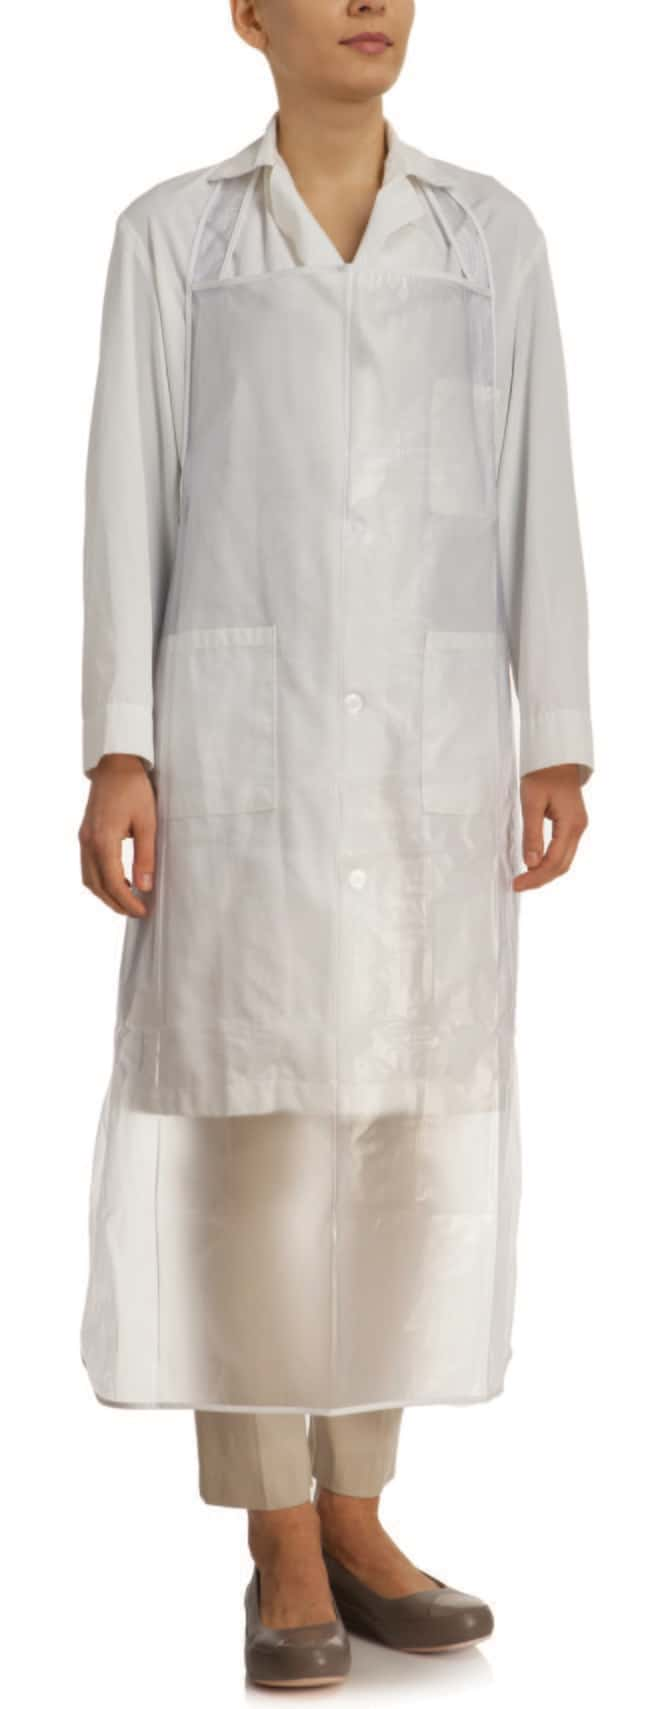 Bel-Art SP Scienceware Vikem Vinyl Aprons:Gloves, Glasses and Safety:Lab